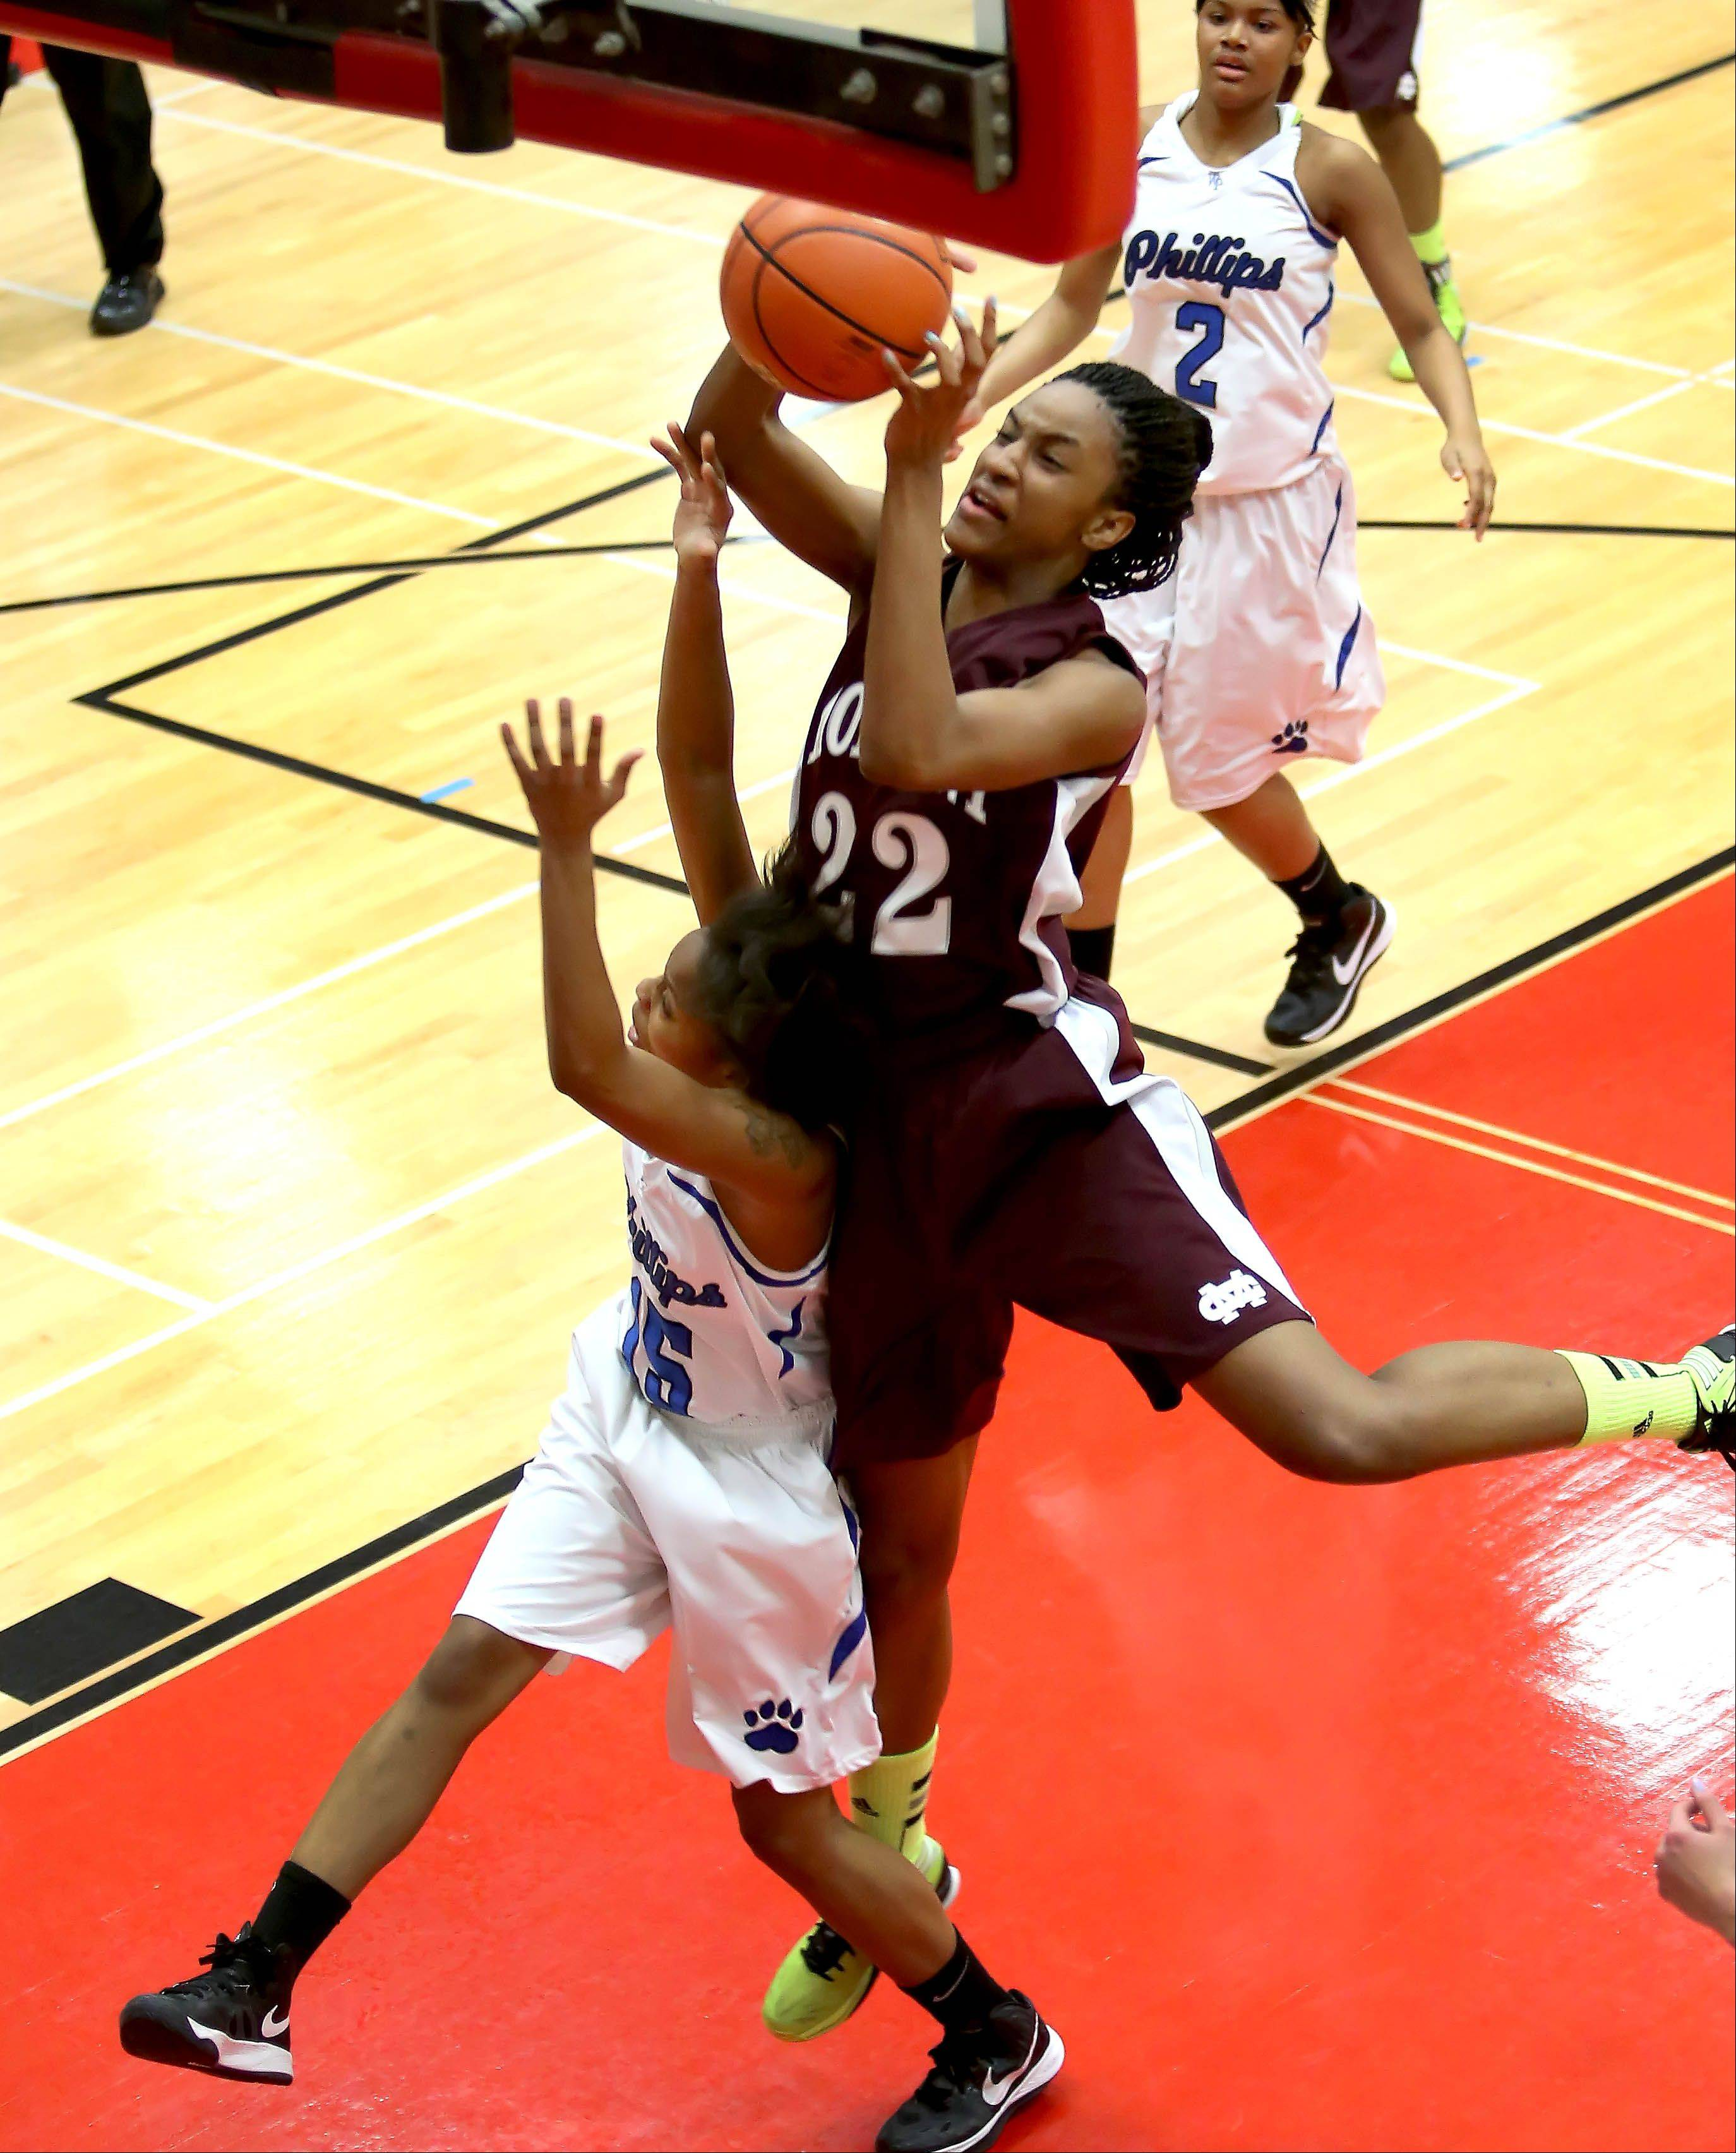 Malayna Johnson of Montini collides with Zemoria Jernigan of Phillips during Class 3A super sectional girls basketball on Monday at Hinsdale Central.